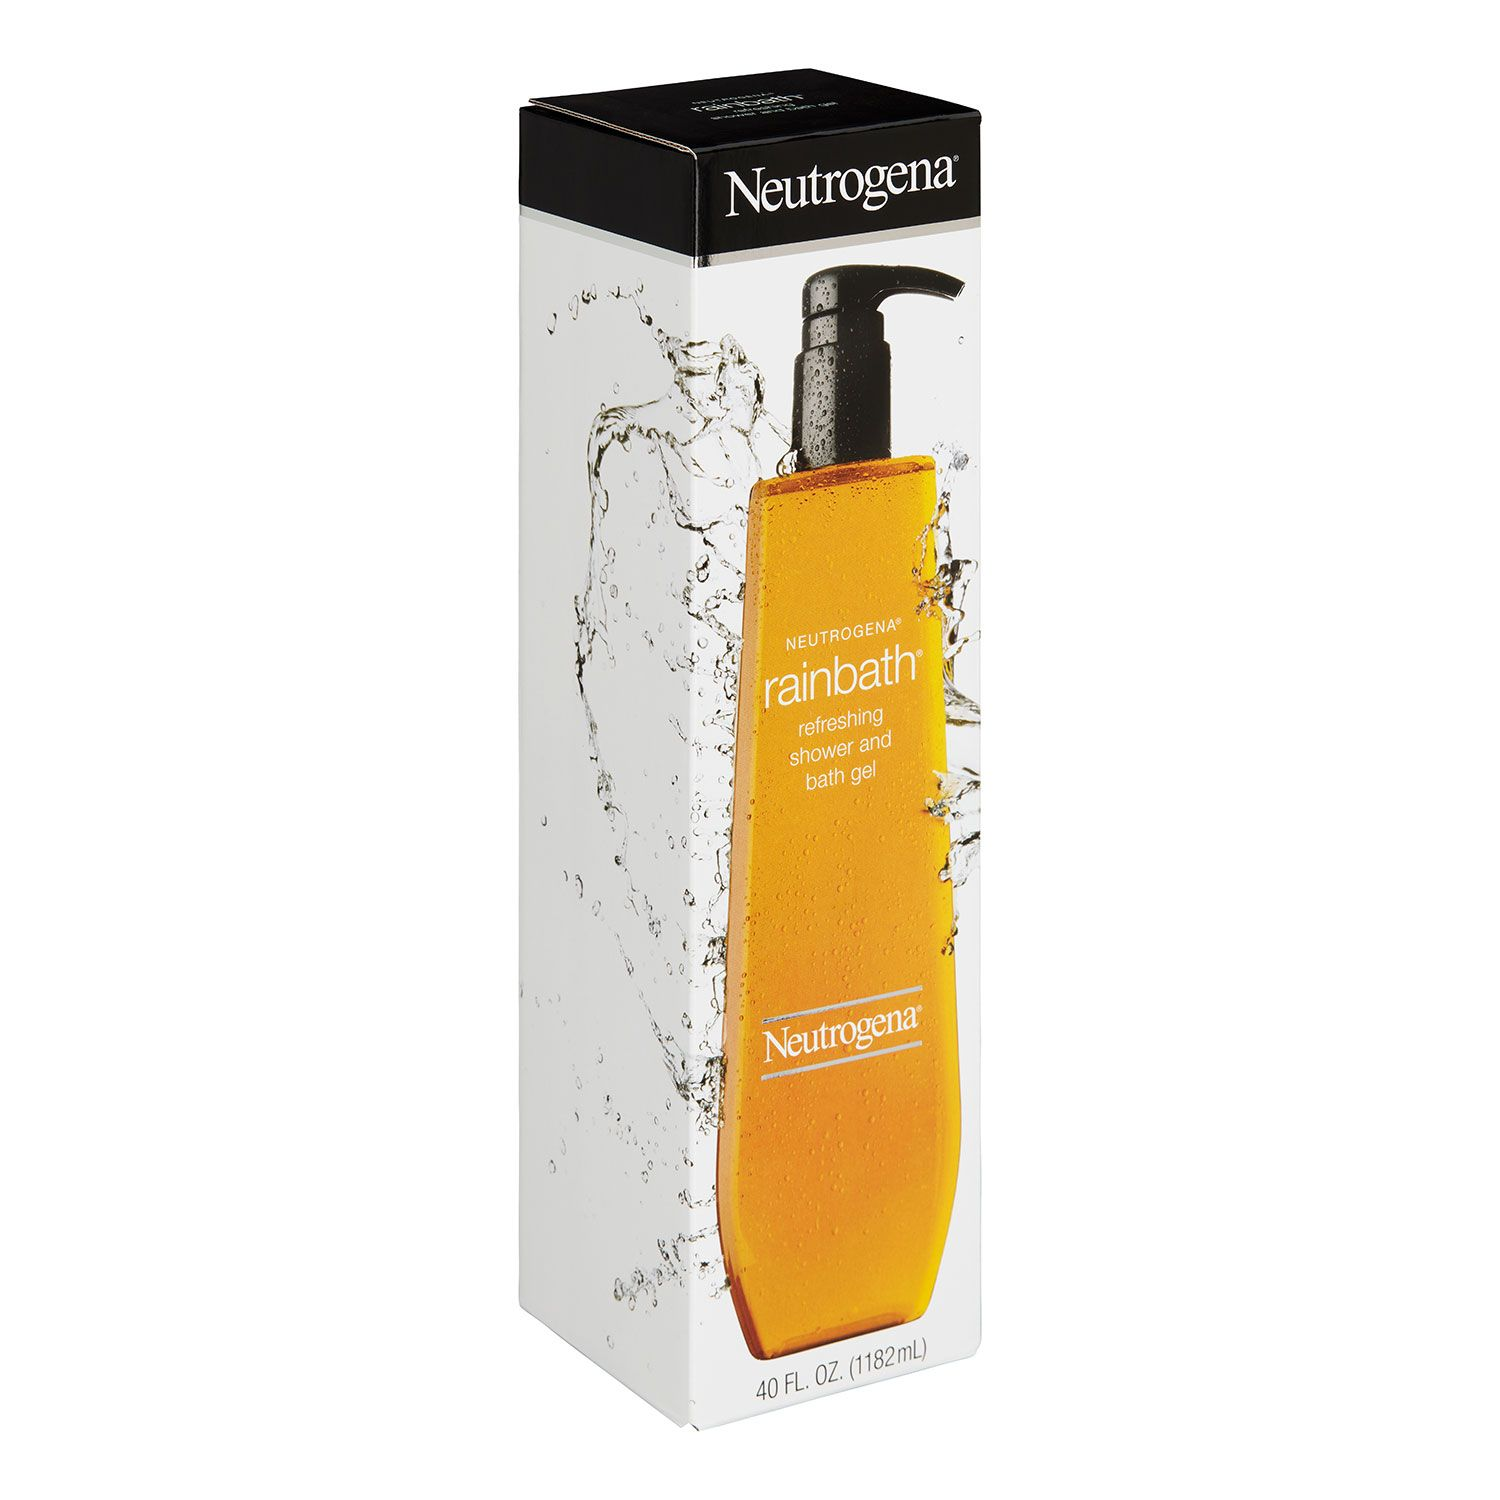 Neutrogena Rainbath Shower Gel, Moisture-rich - 40 oz. at Sears.com